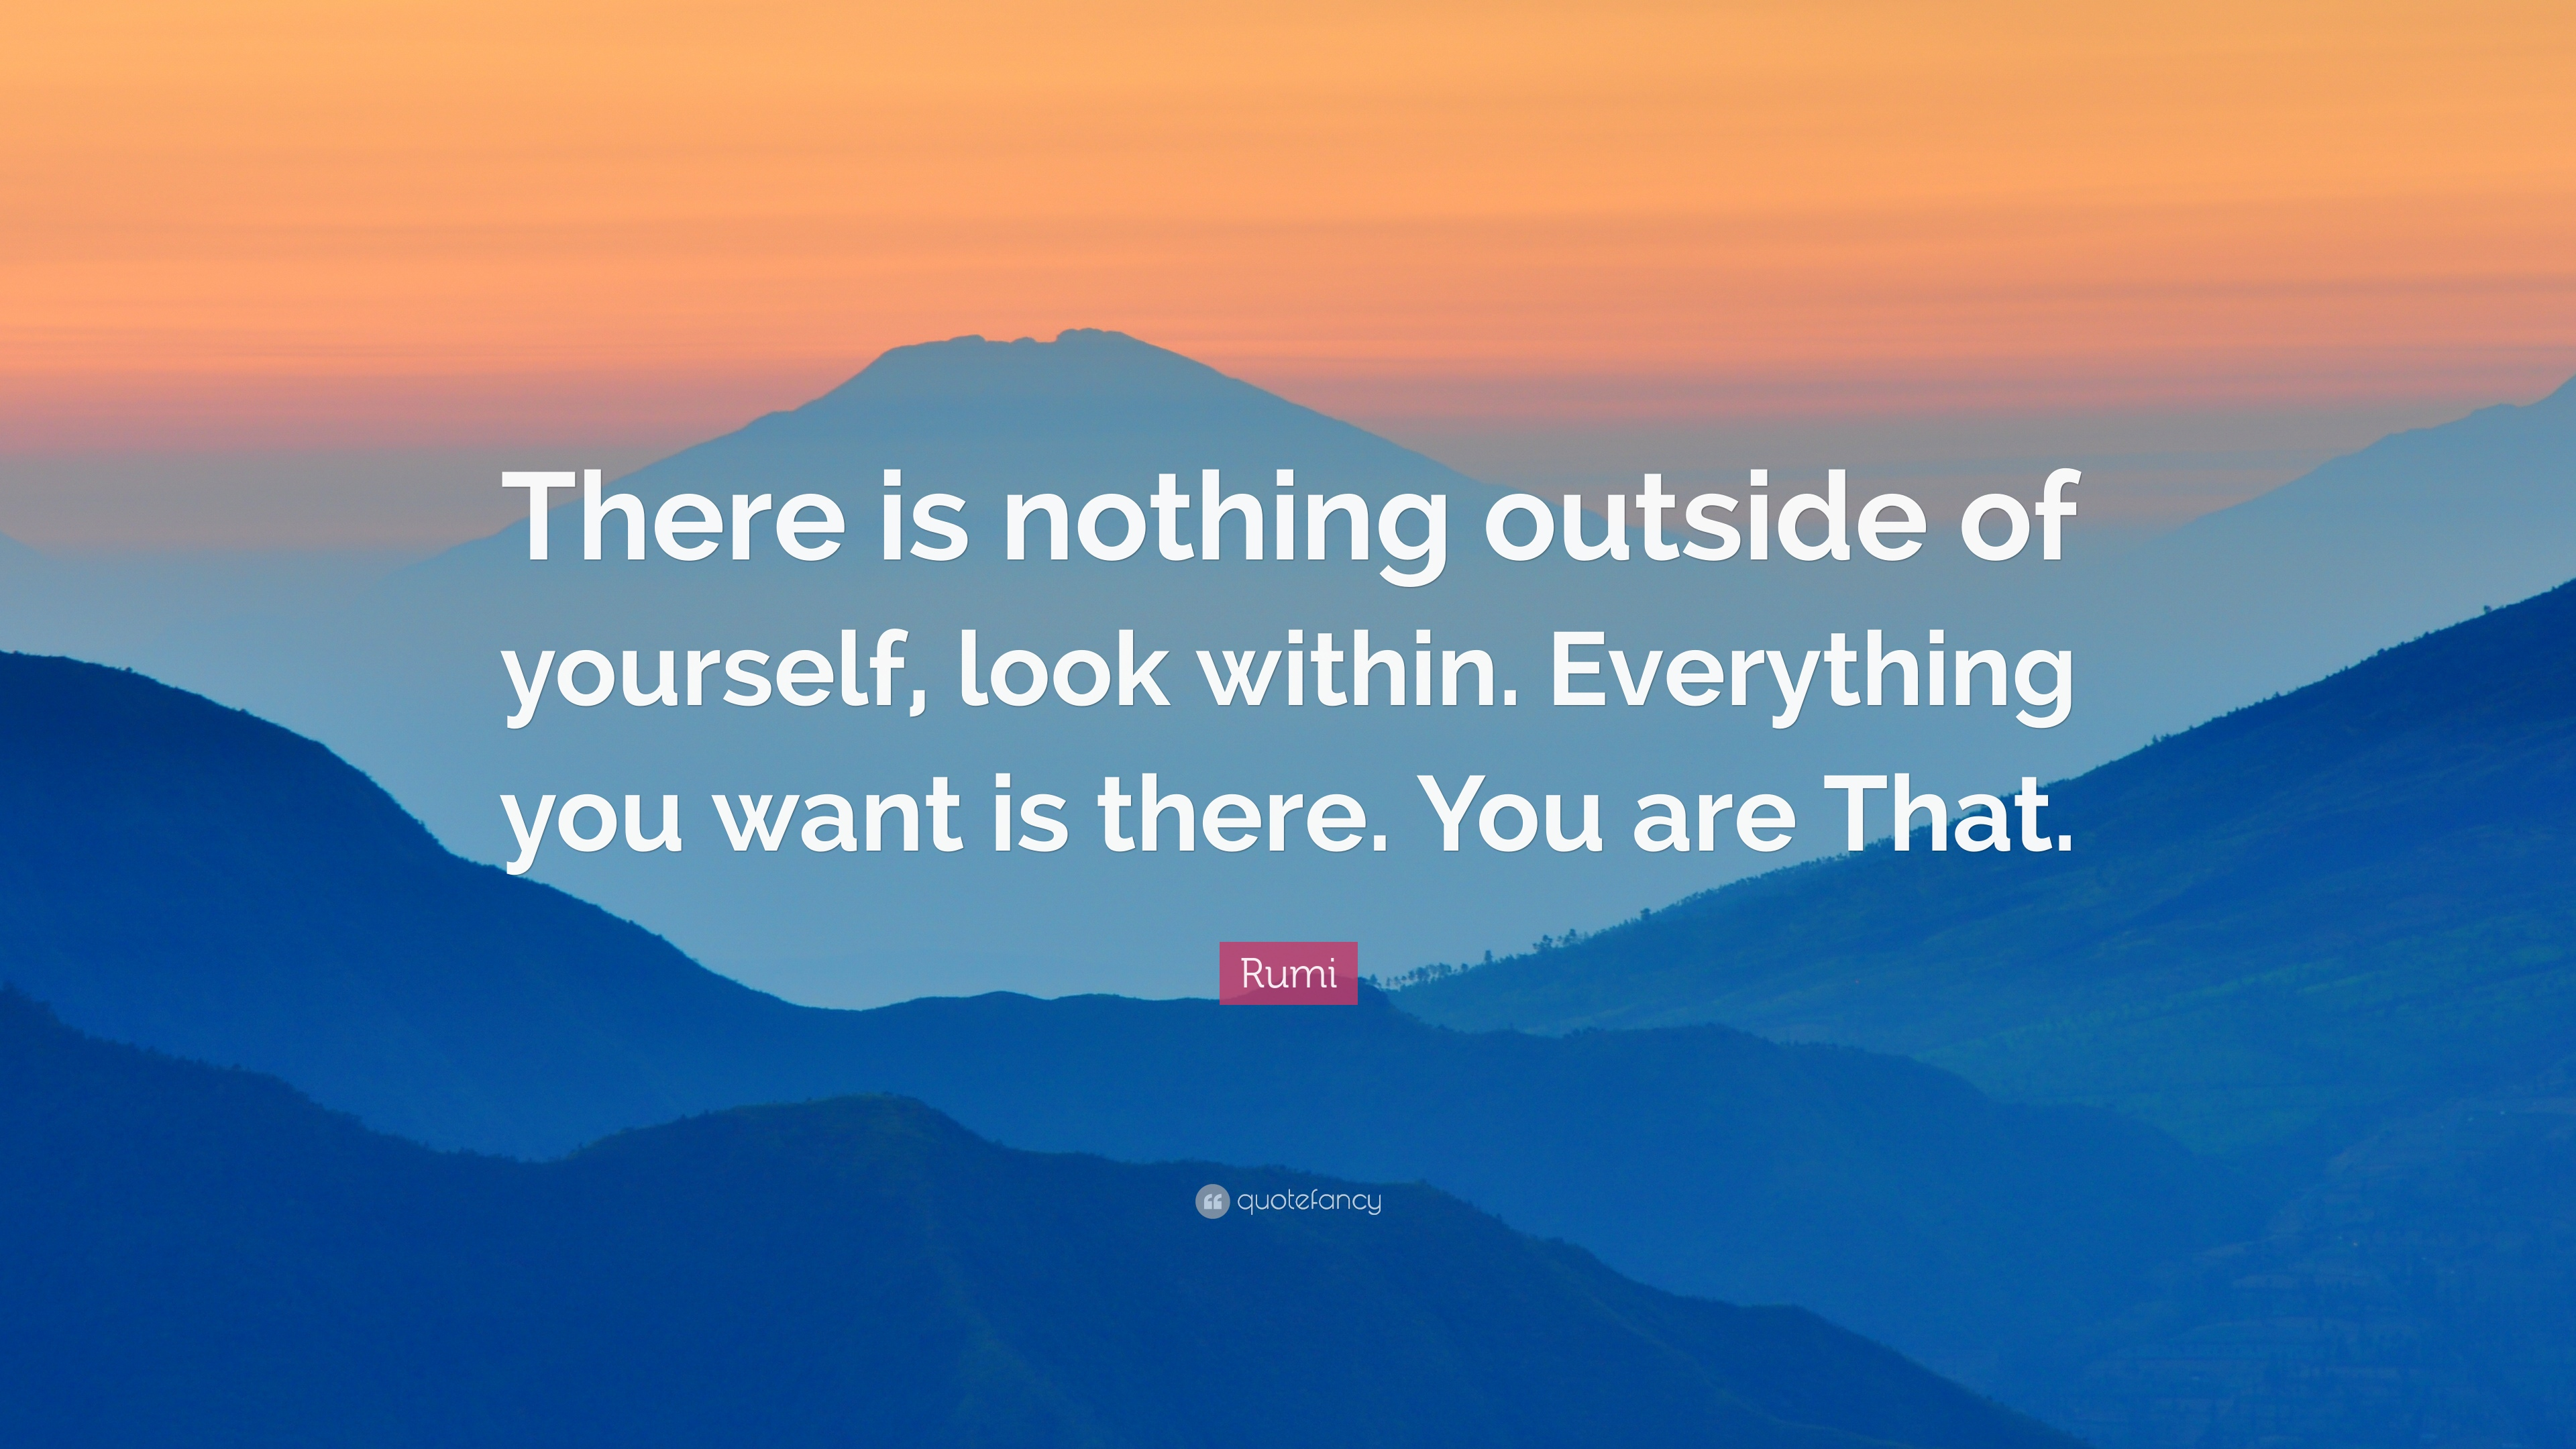 Rumi Quote There Is Nothing Outside Of Yourself Look Within Everything You Want Is There You Are That 10 Wallpapers Quotefancy